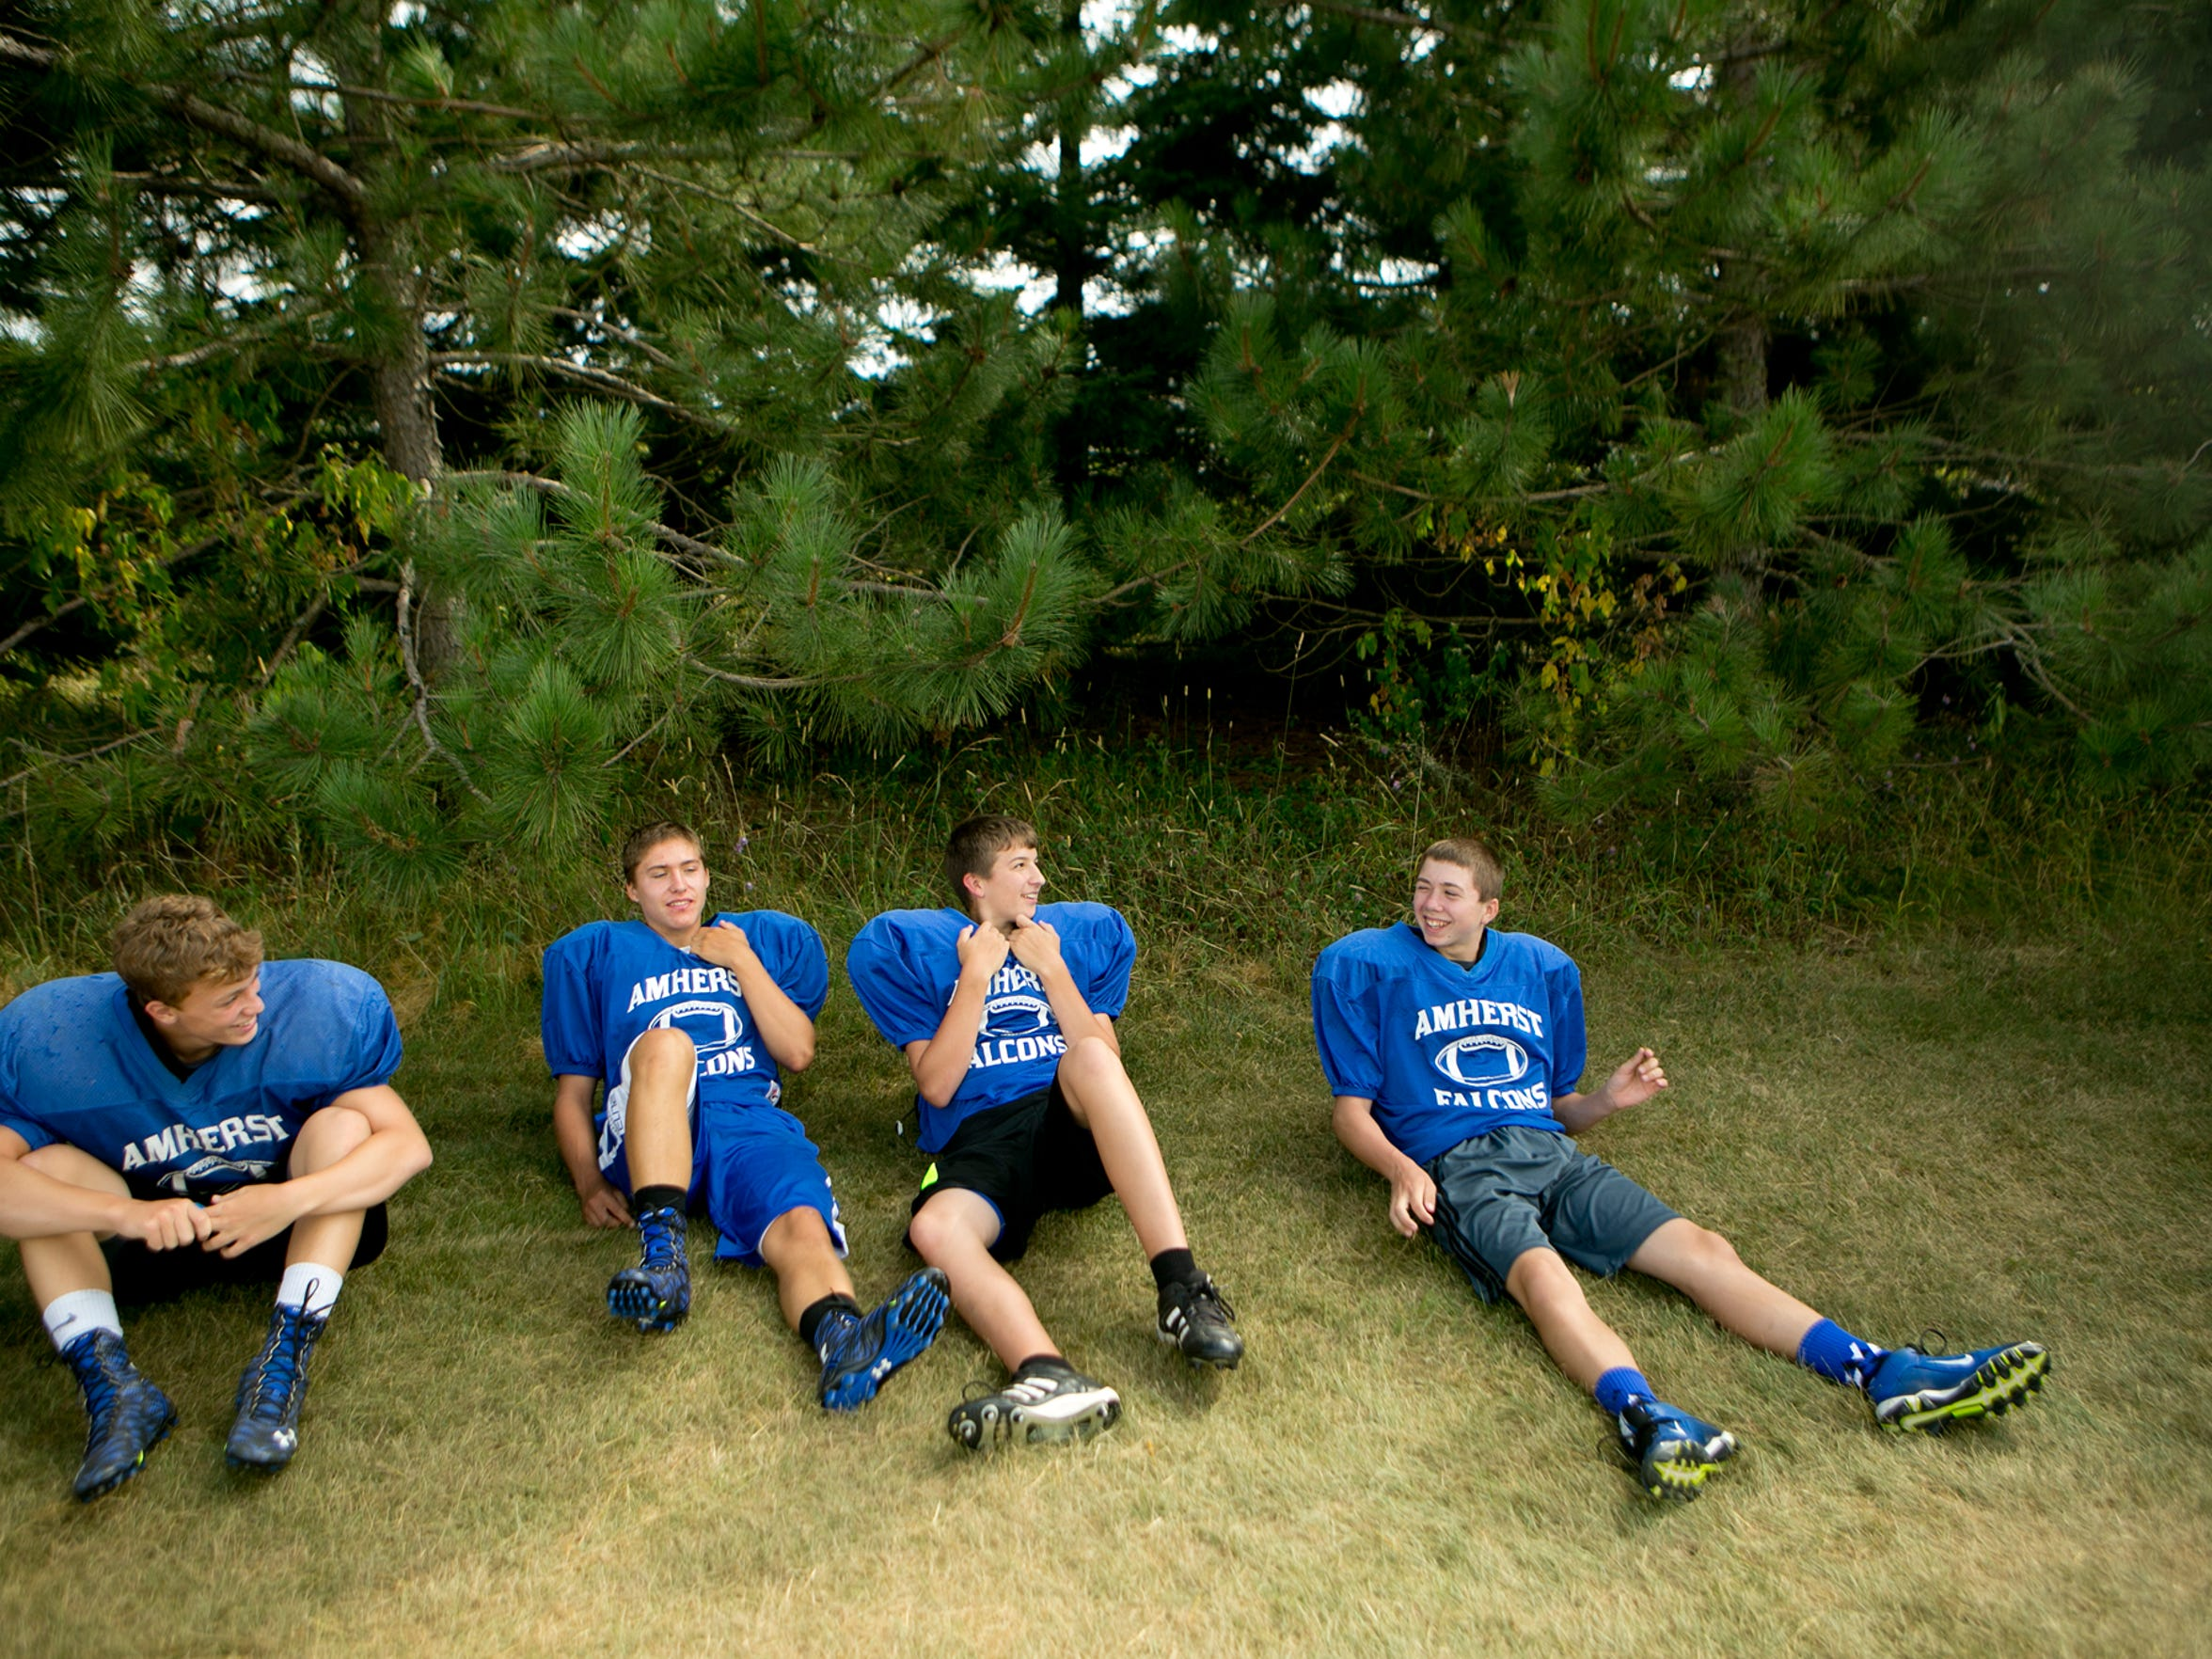 Amherst football players sit in the shade before Amherst football practice starts, Thursday, Aug. 6, 2015.